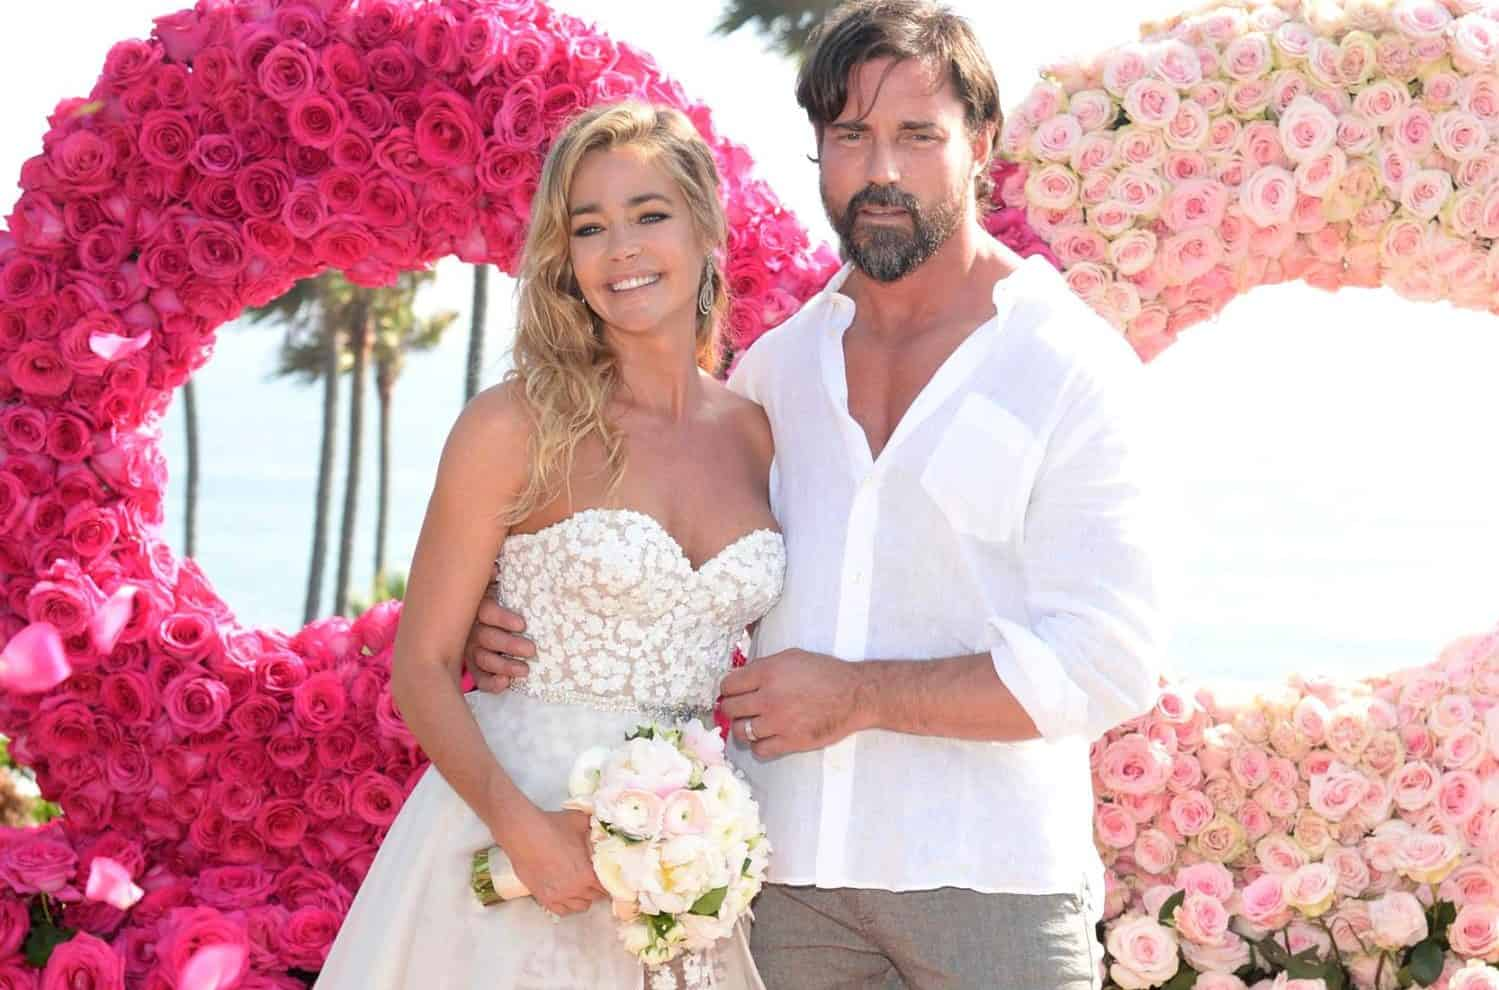 Aaron Phypers and Denise Richards Wedding